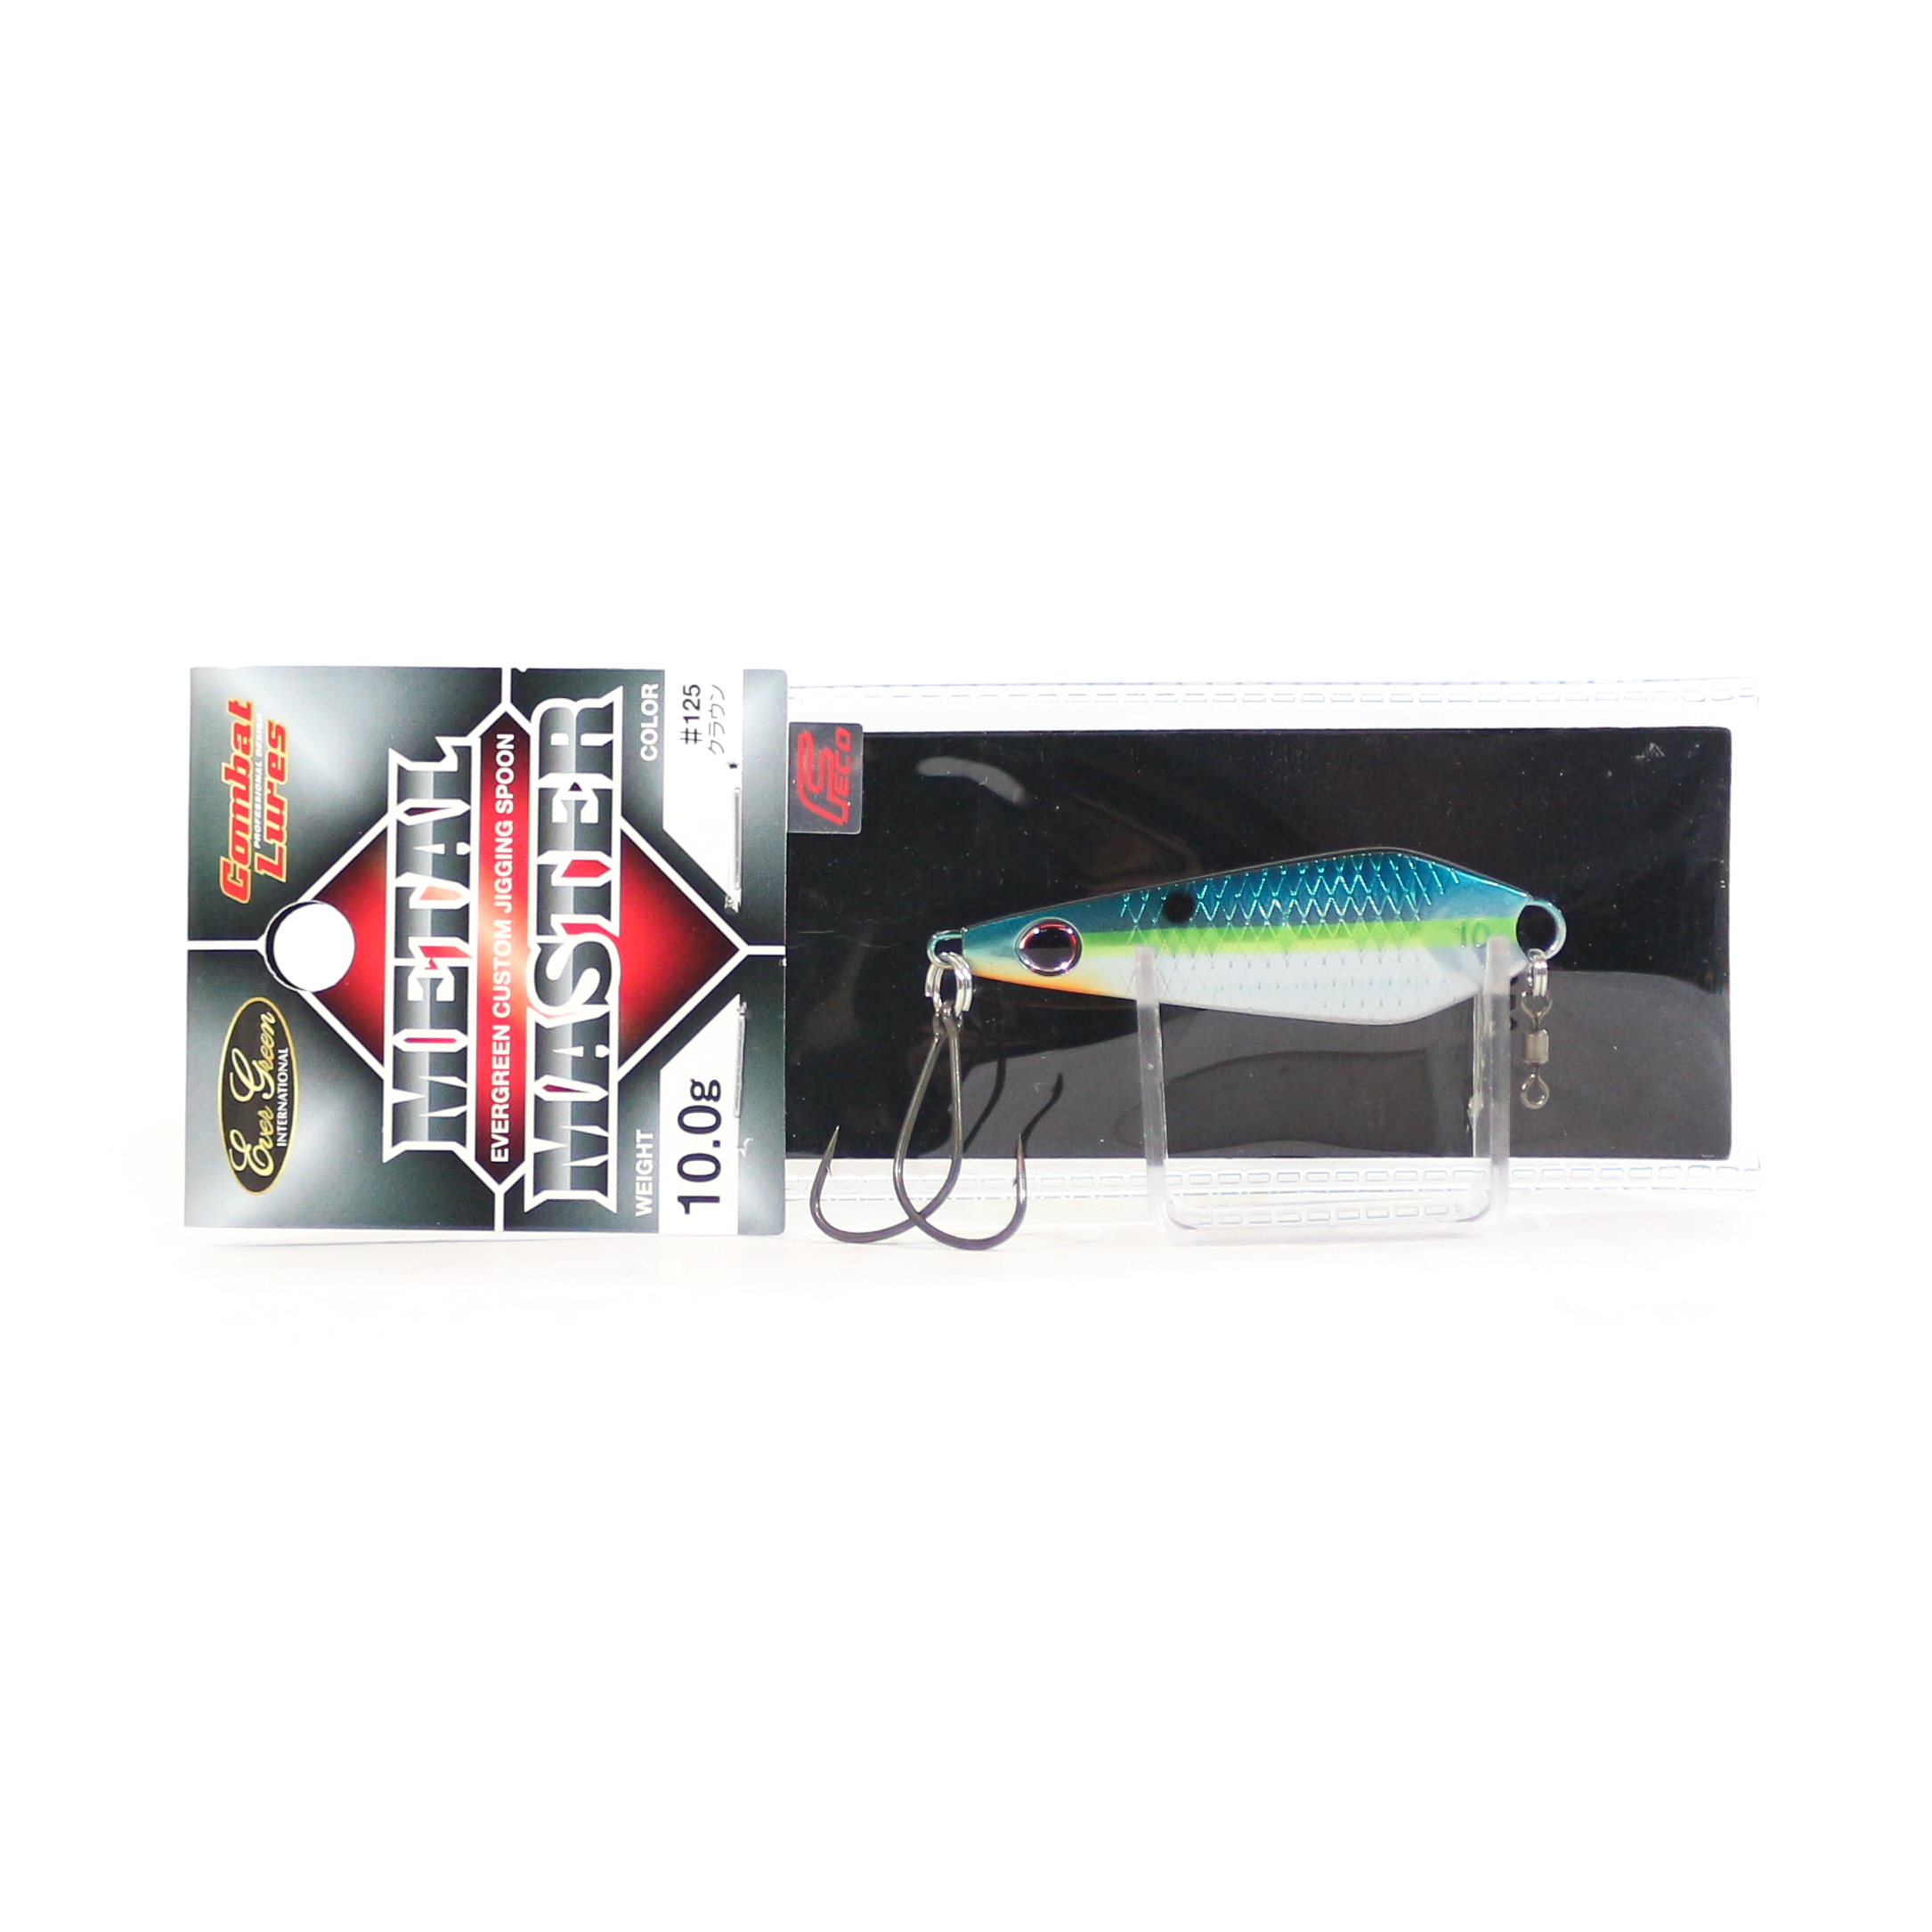 Evergreen Metal Master Custom Jigging Spoon 10 grams 245 (6017)